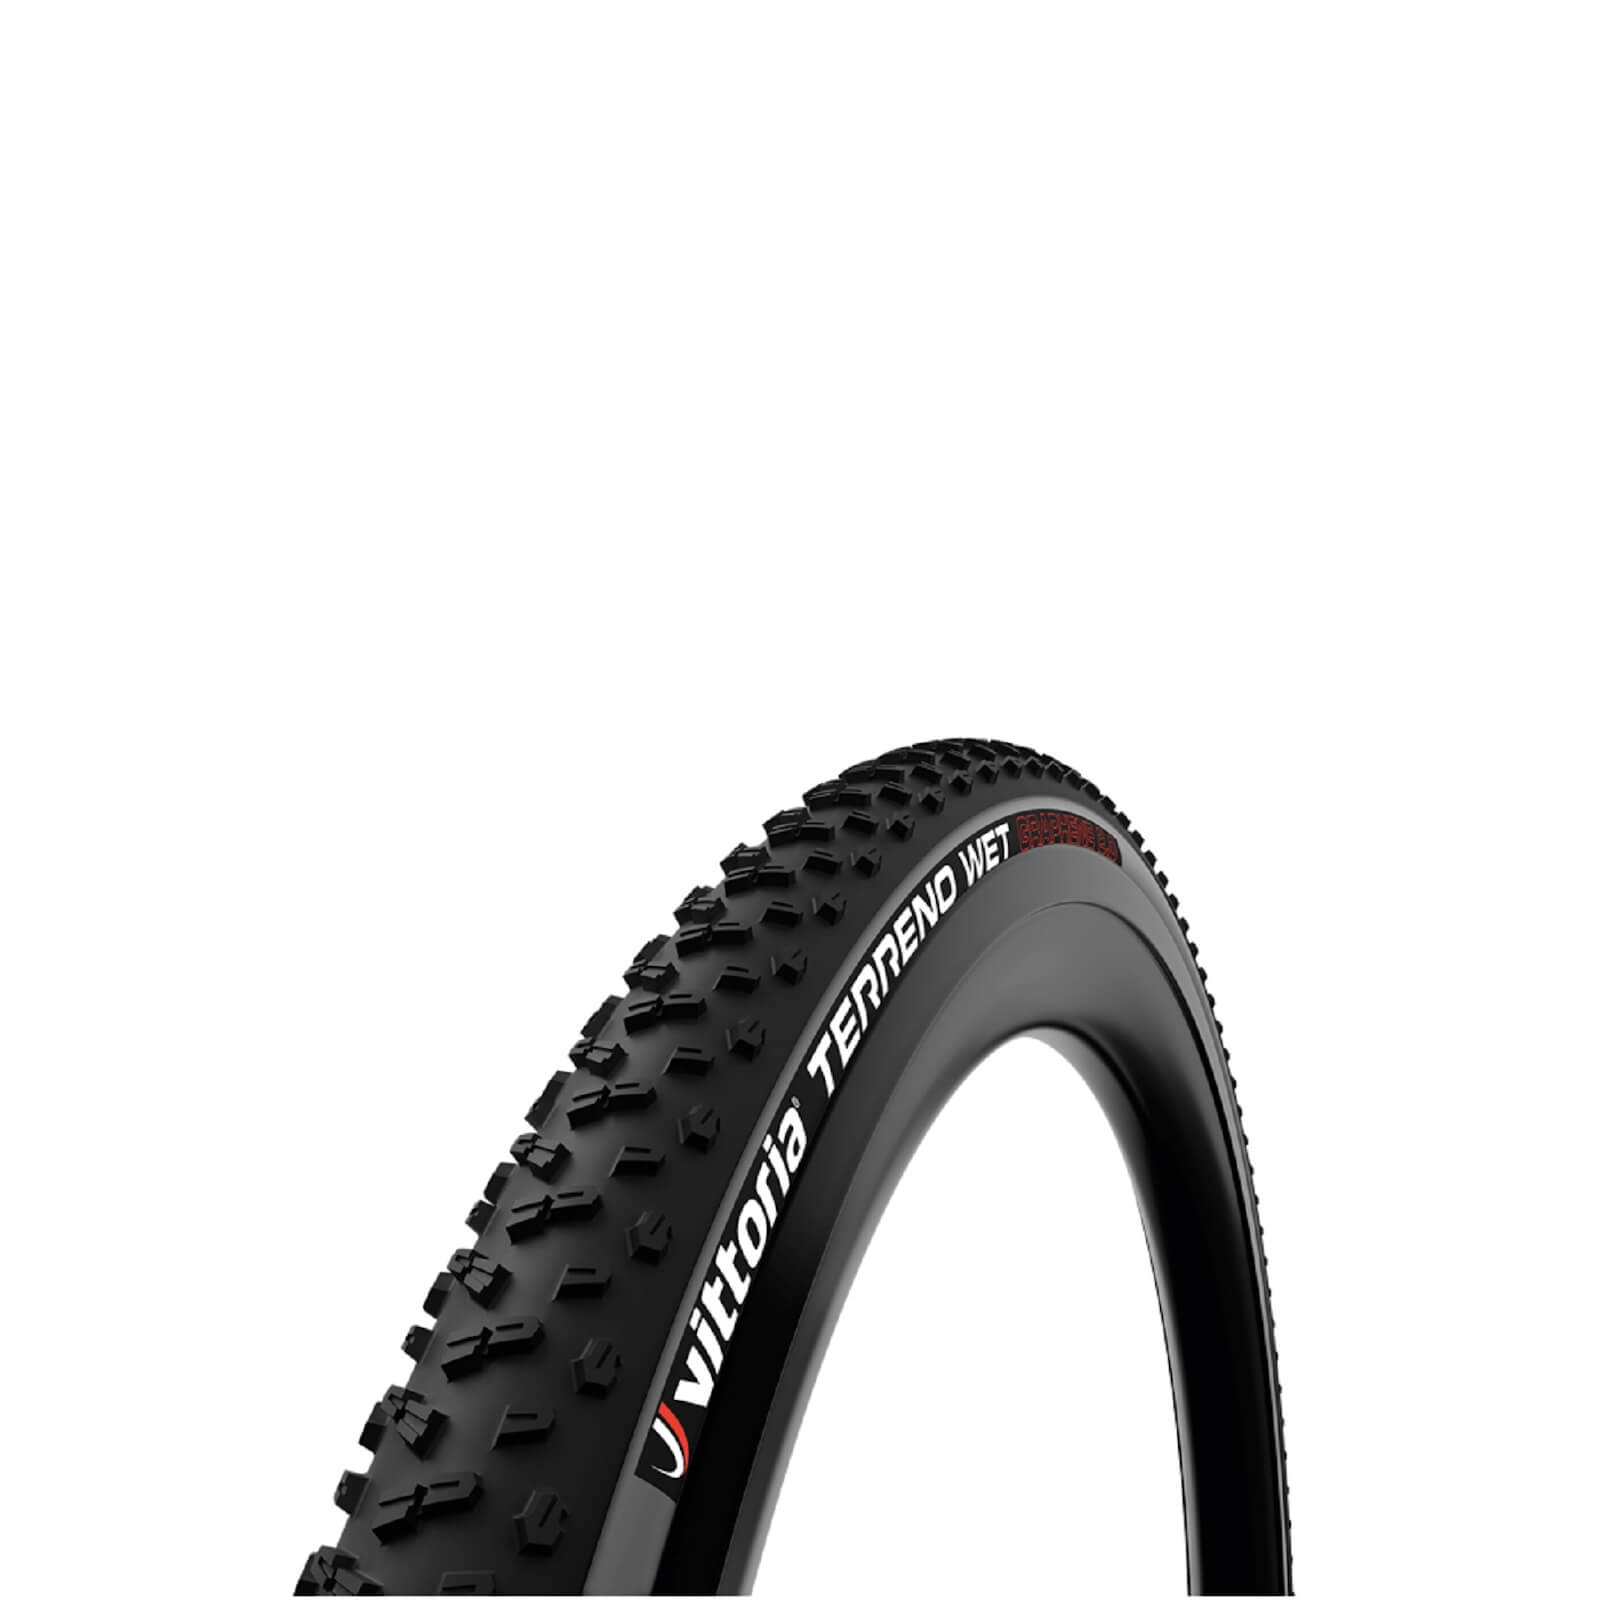 Vittoria Terreno Wet TNT G2.0 Gravel Tire - 700 x 40mm - Anthracite/Black